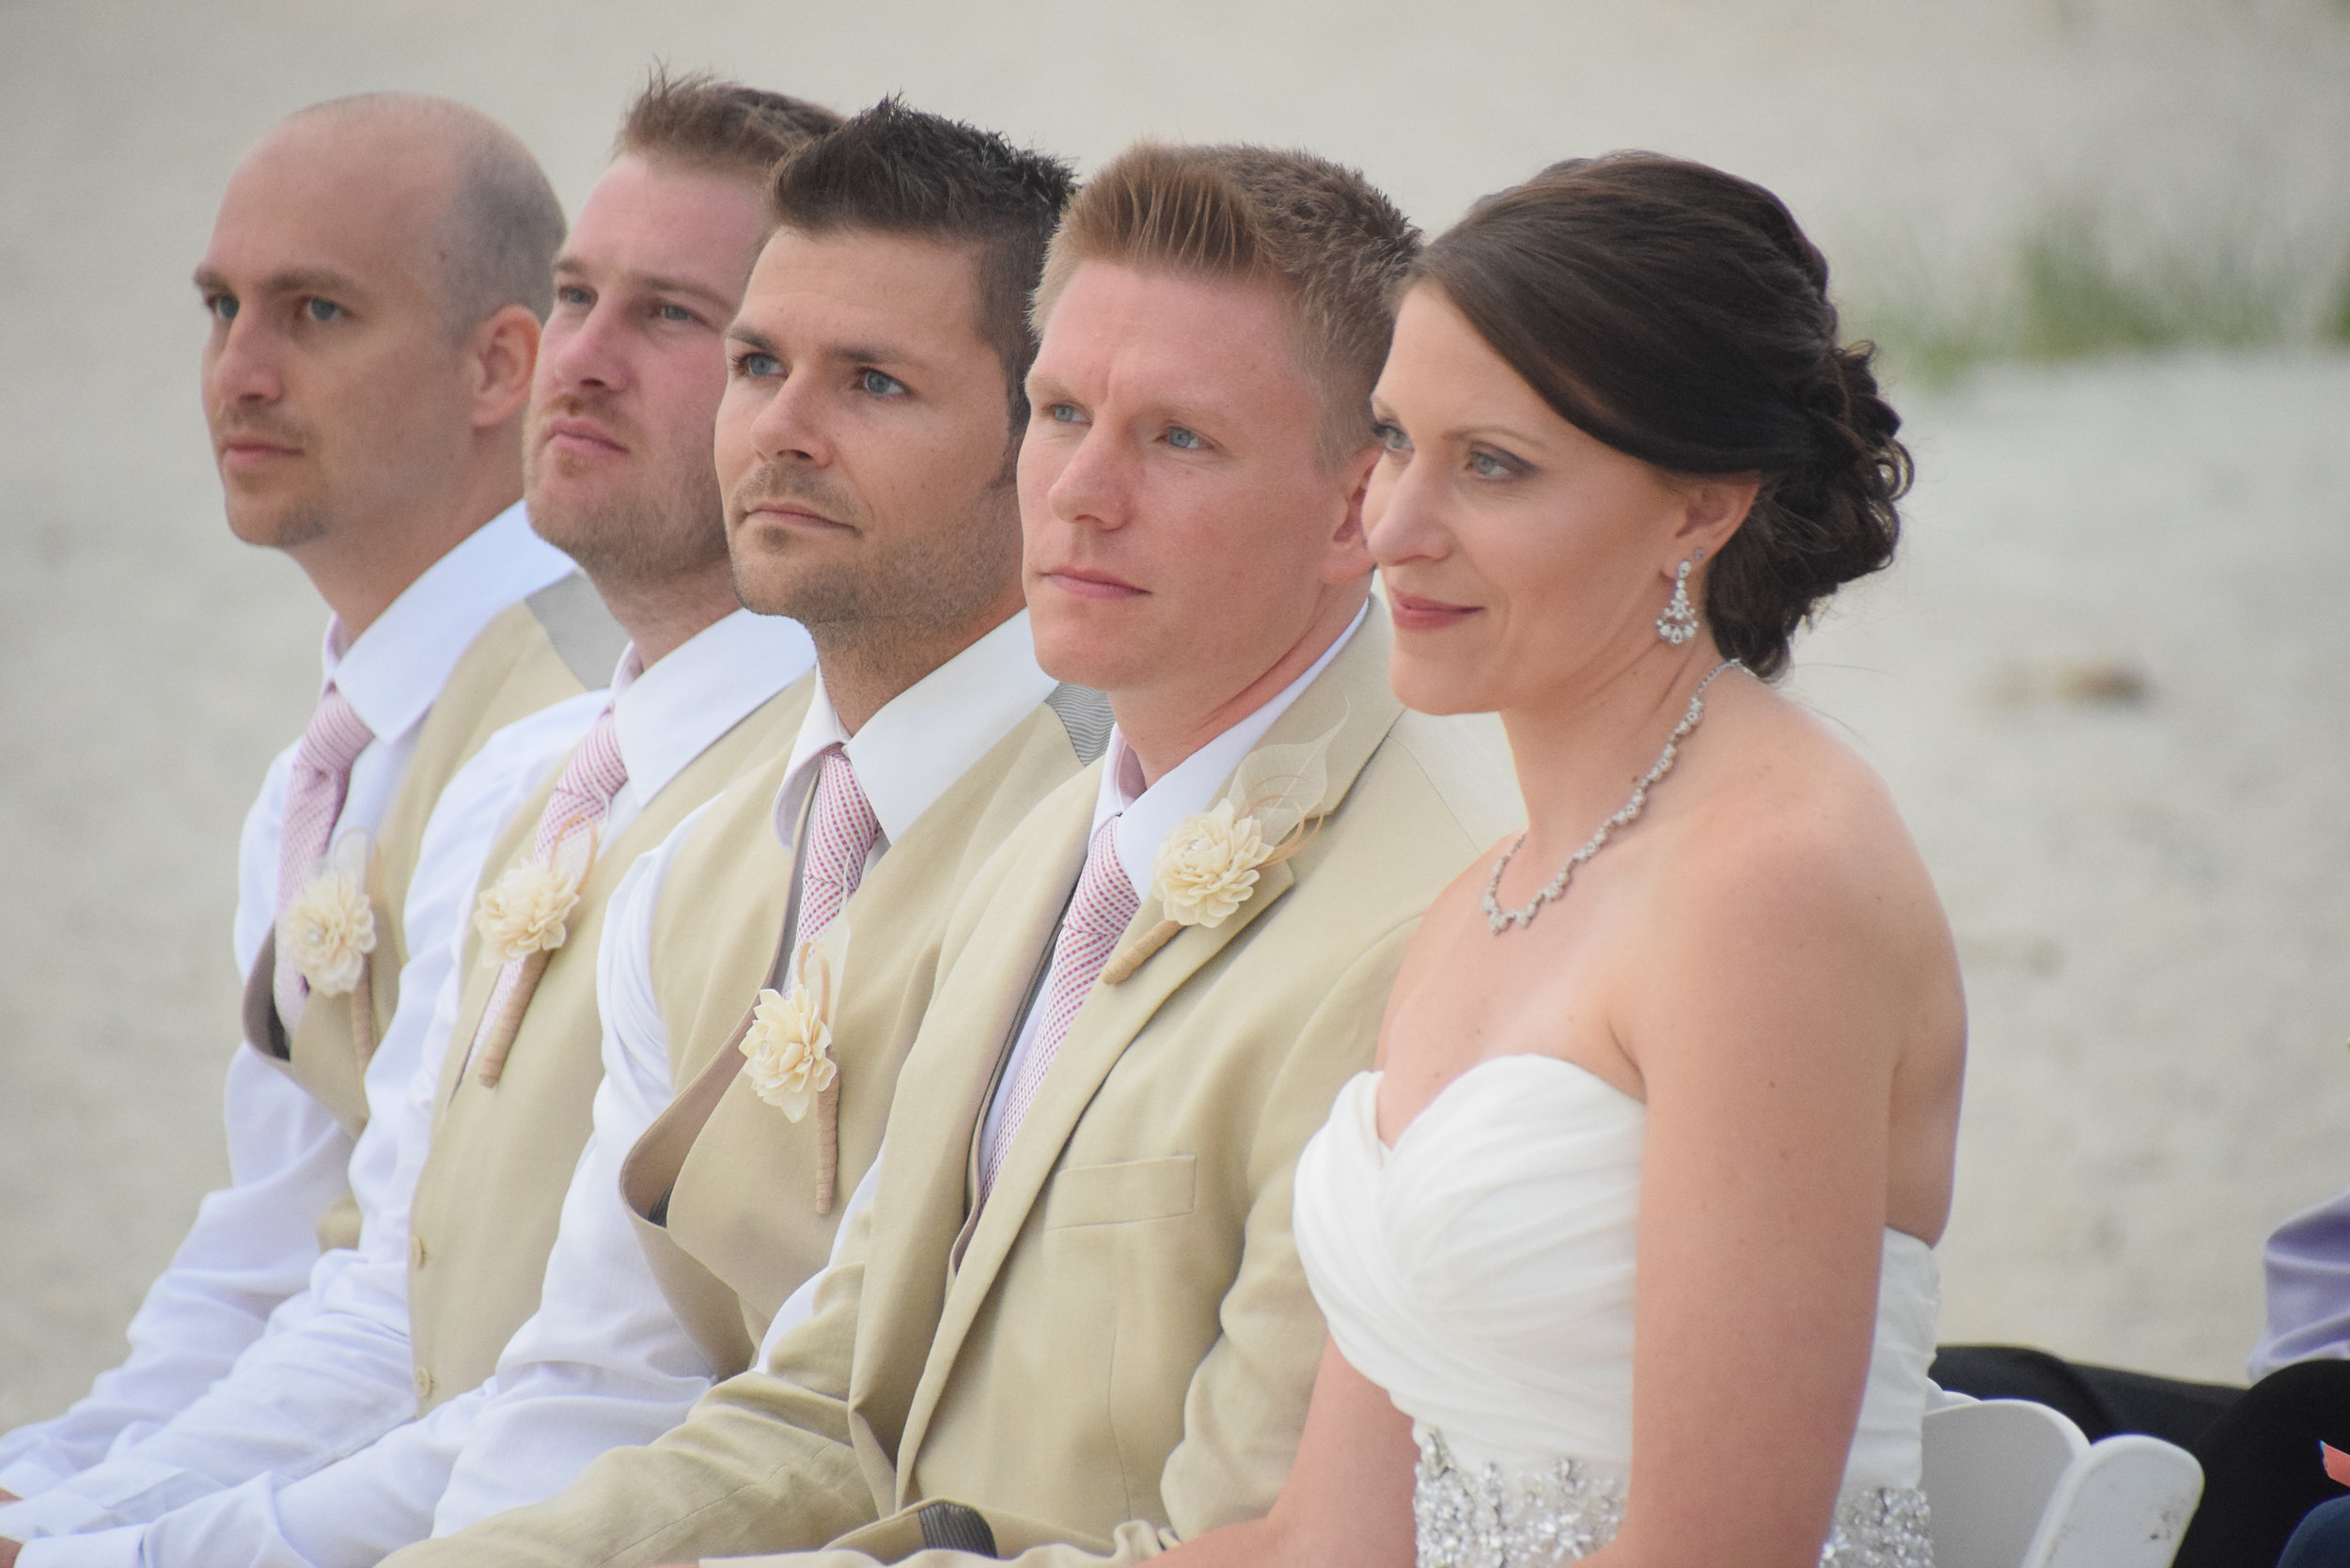 Bride and groom listening to ceremony with attendants.